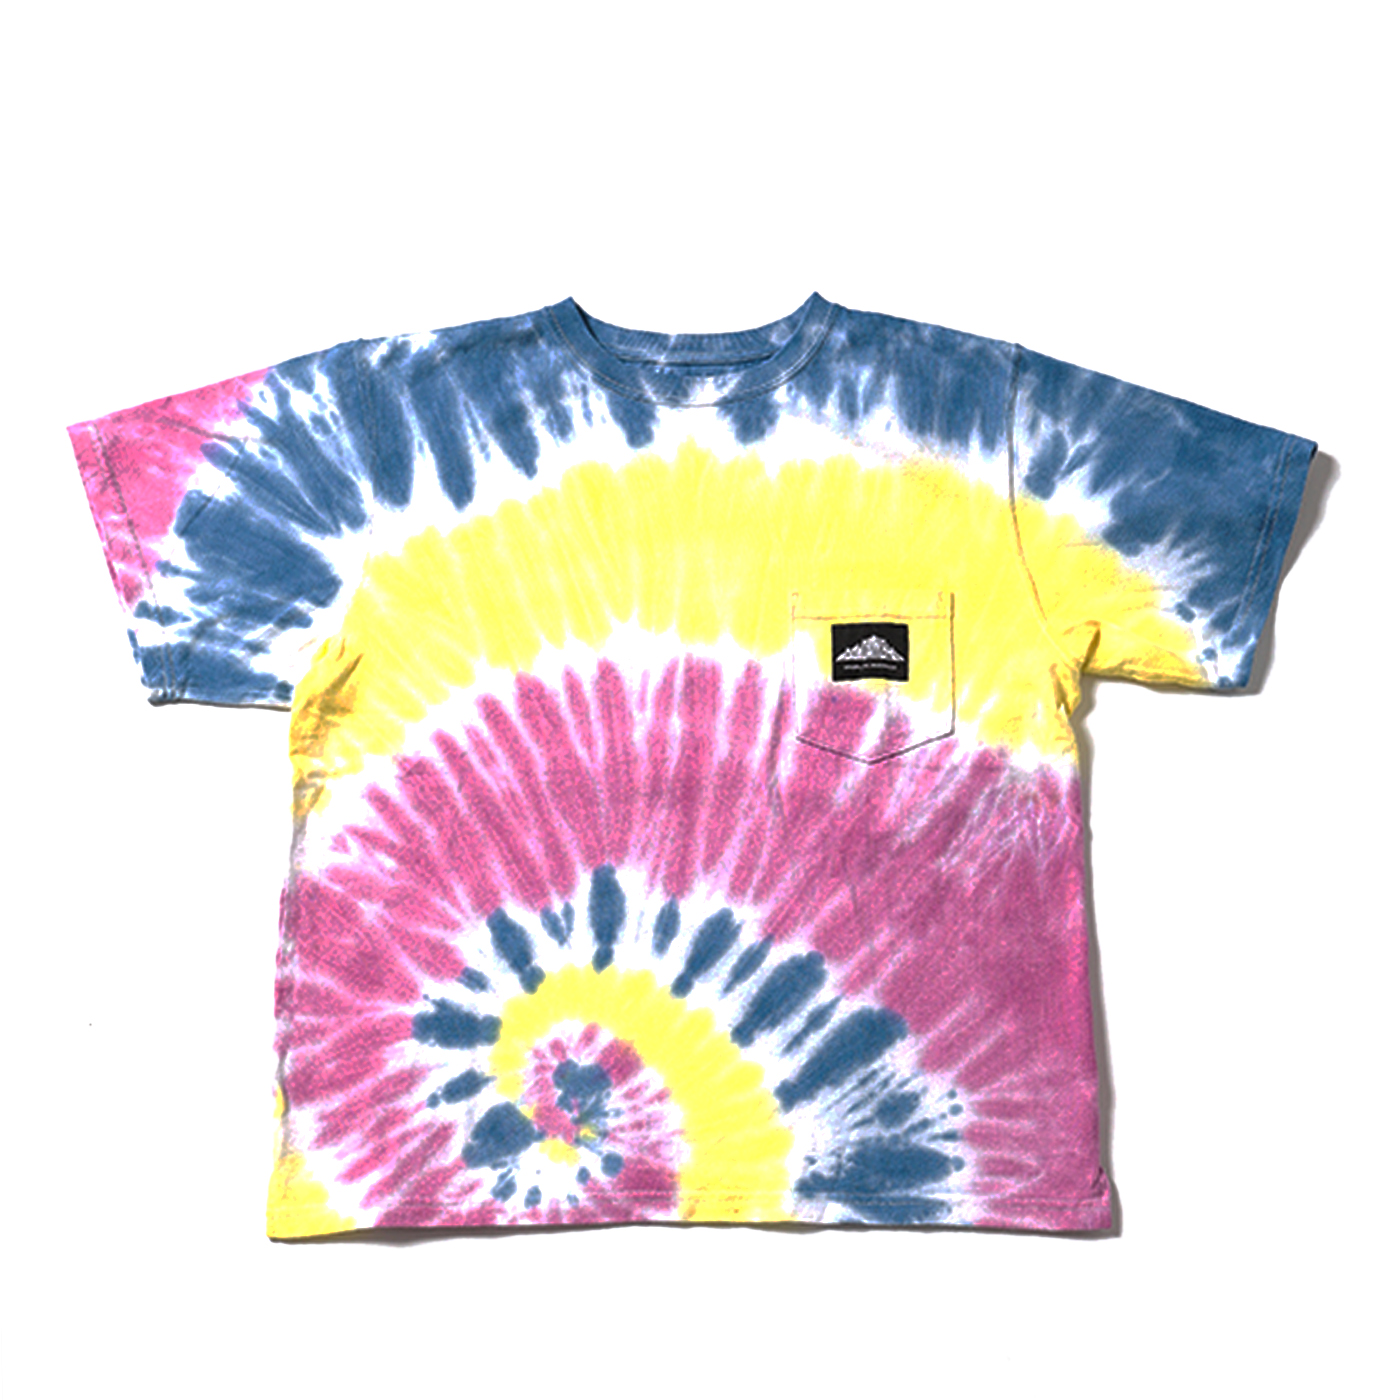 product: MS Hendrix / color: PAT2 1